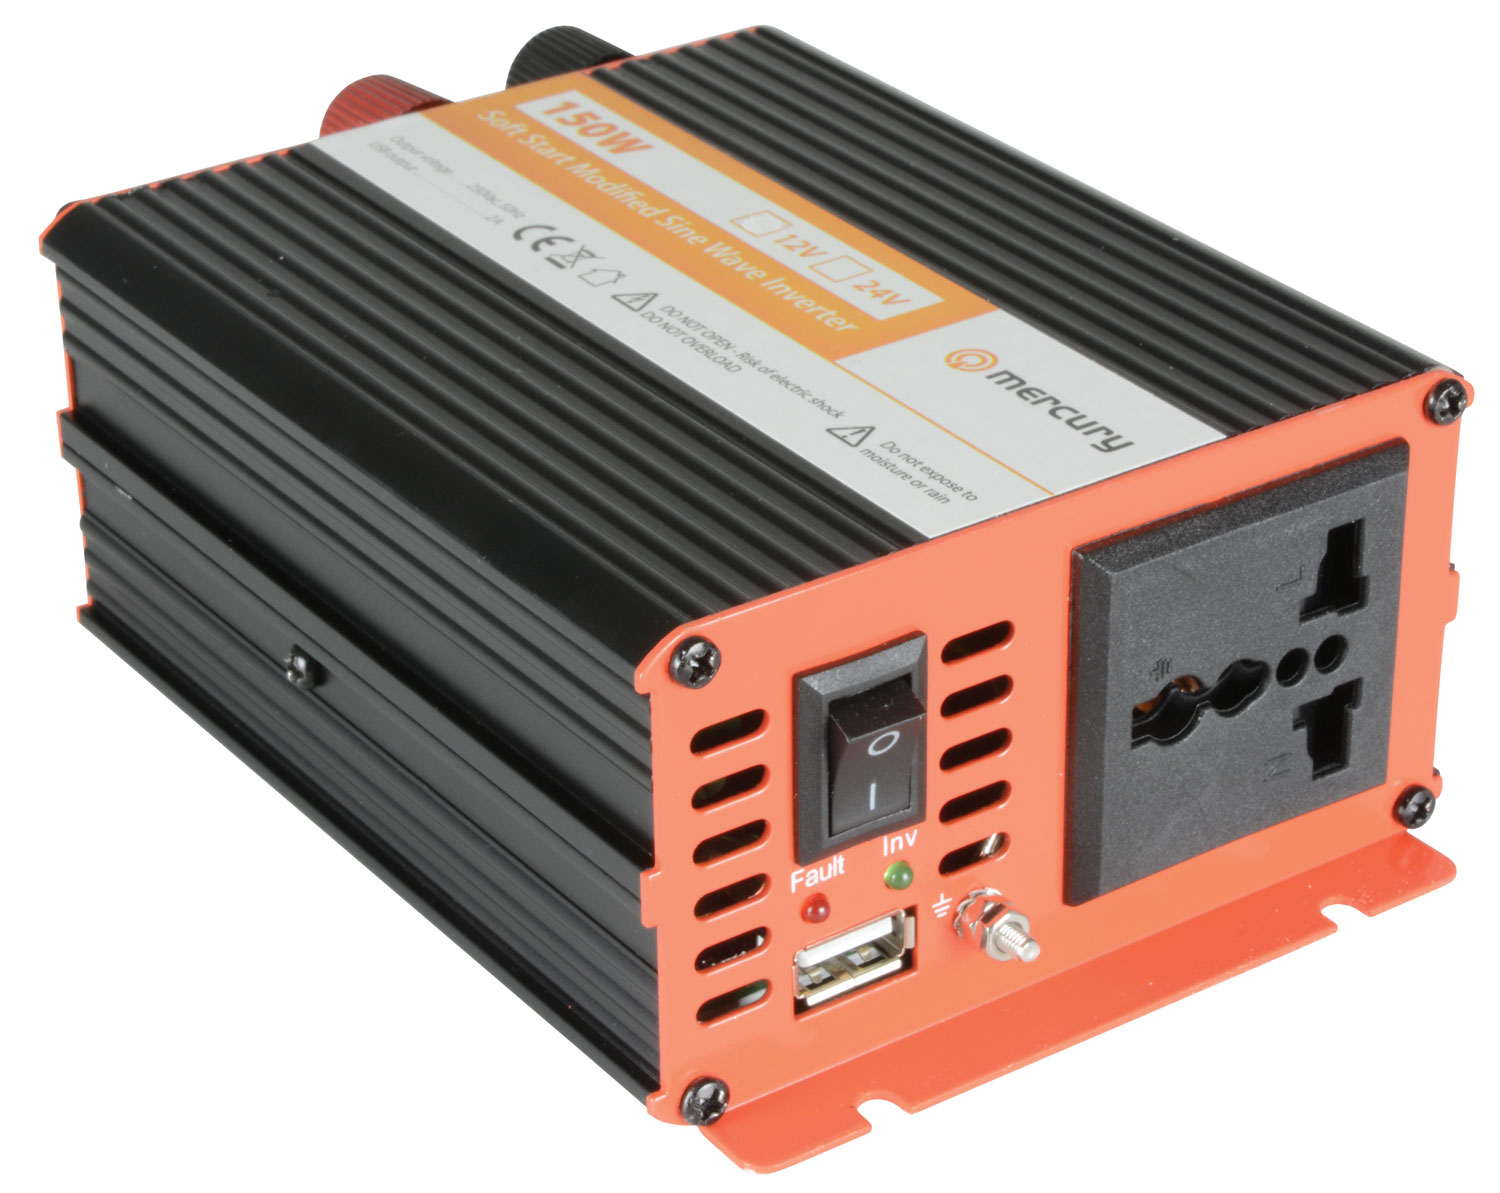 12V Softstart Power Inverter